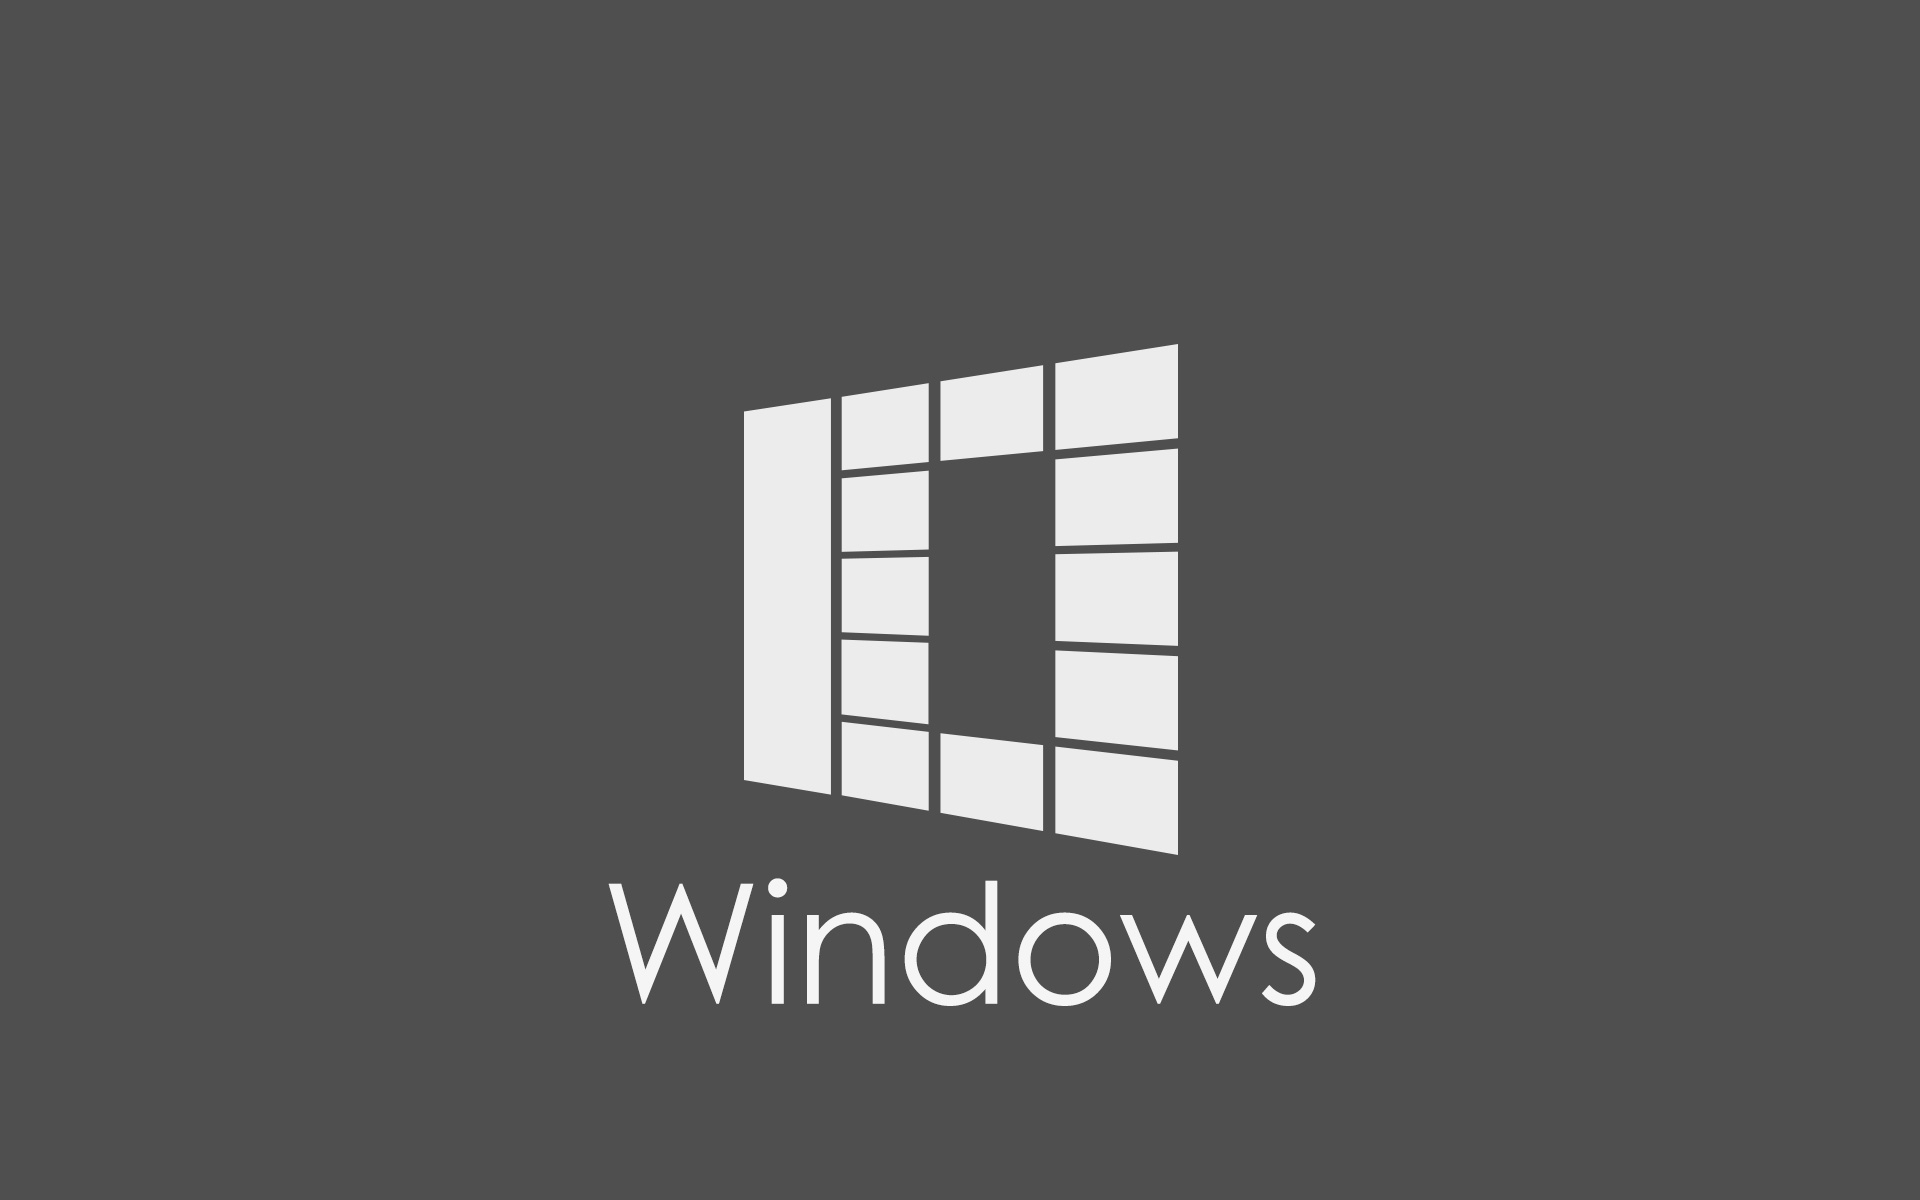 Windows 10 workstation wallpaper dark by ipodpunker 1920x1200